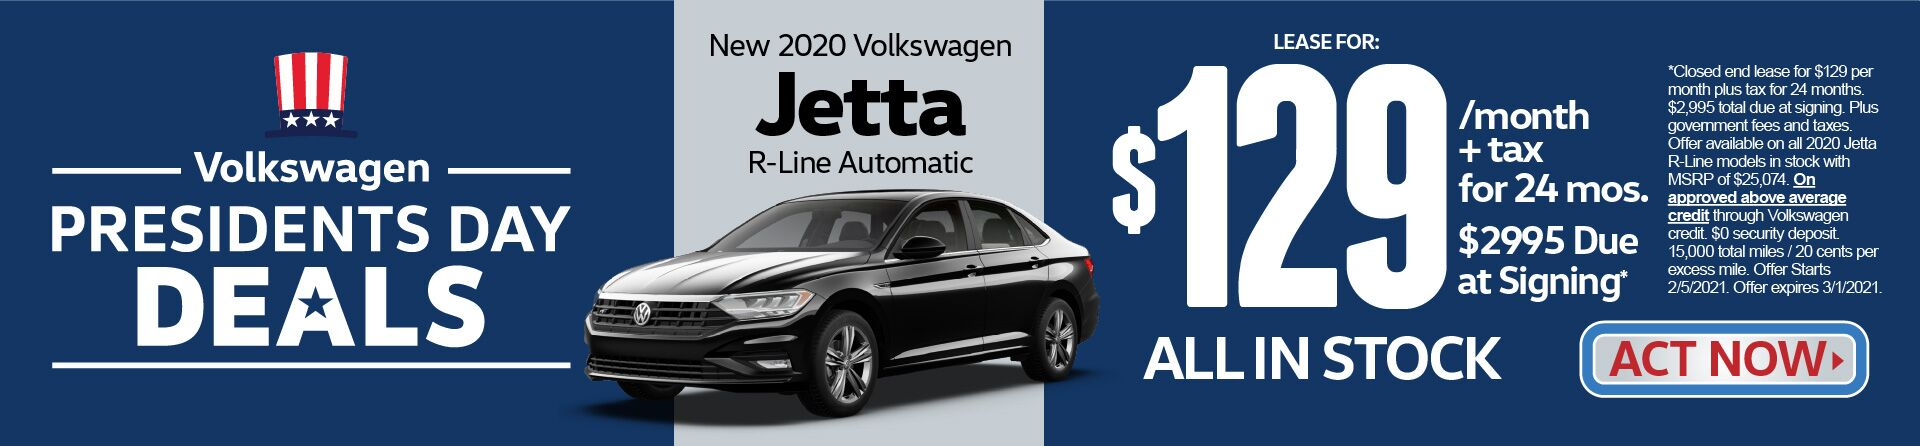 New 2020 VW Jetta R-Line Automatic | Lease for $129 a month for 24 months | Act Now